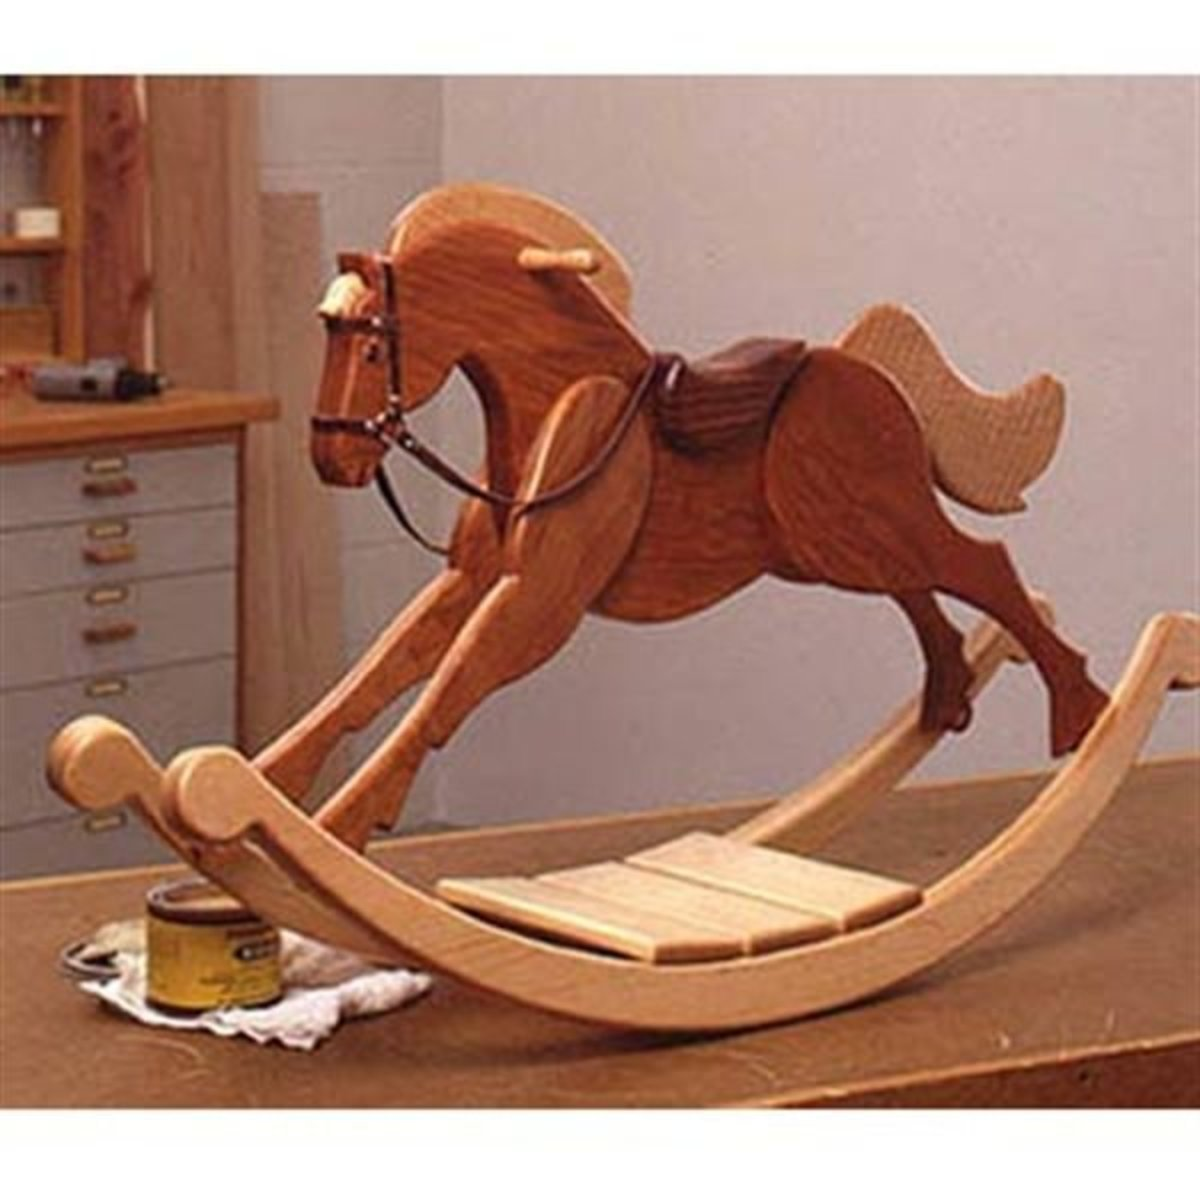 Wood Magazine Woodworking Project Paper Plan To Build Playroom Palomino Rocking Horse